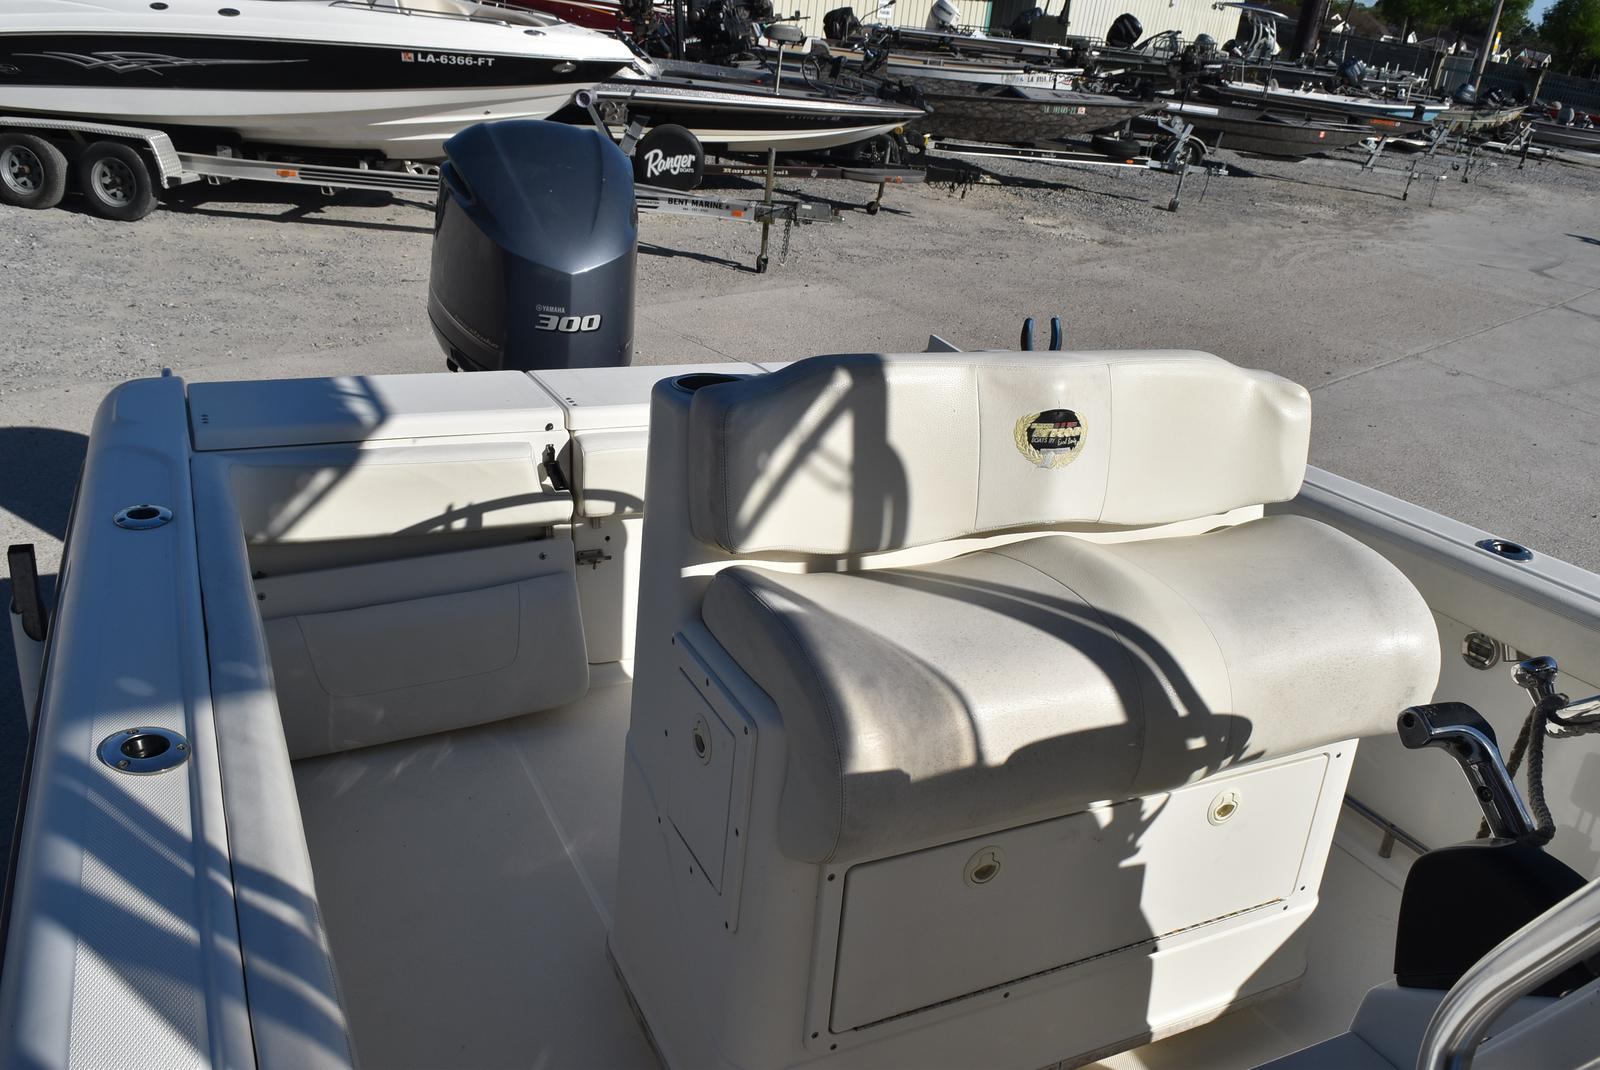 2006 Triton boat for sale, model of the boat is 2486 & Image # 23 of 24